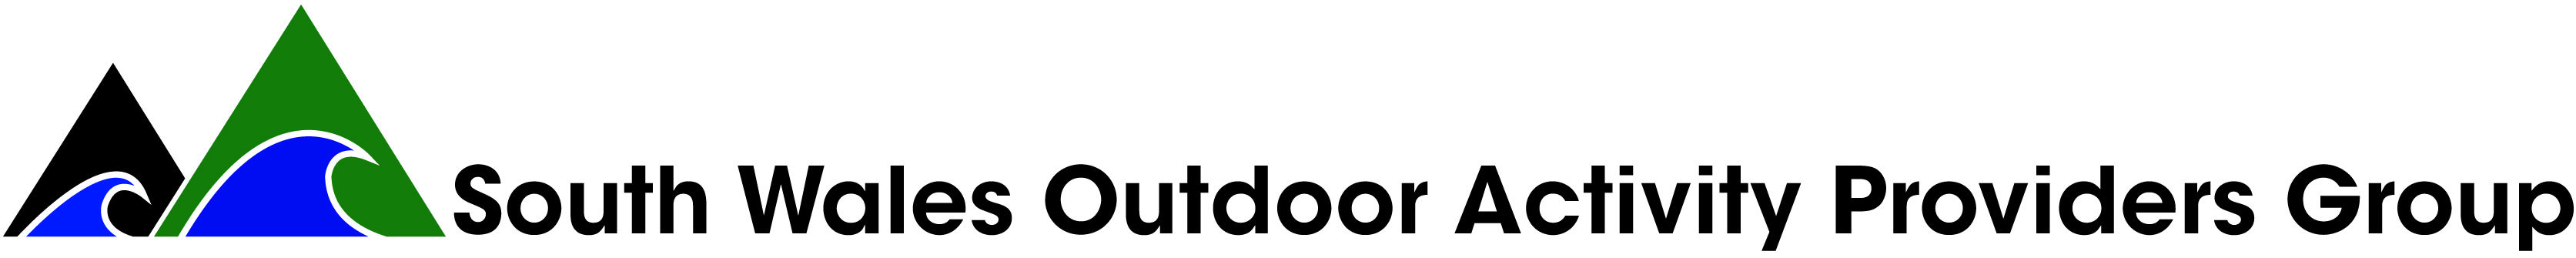 South Wales Outdoor Activity Providers Group